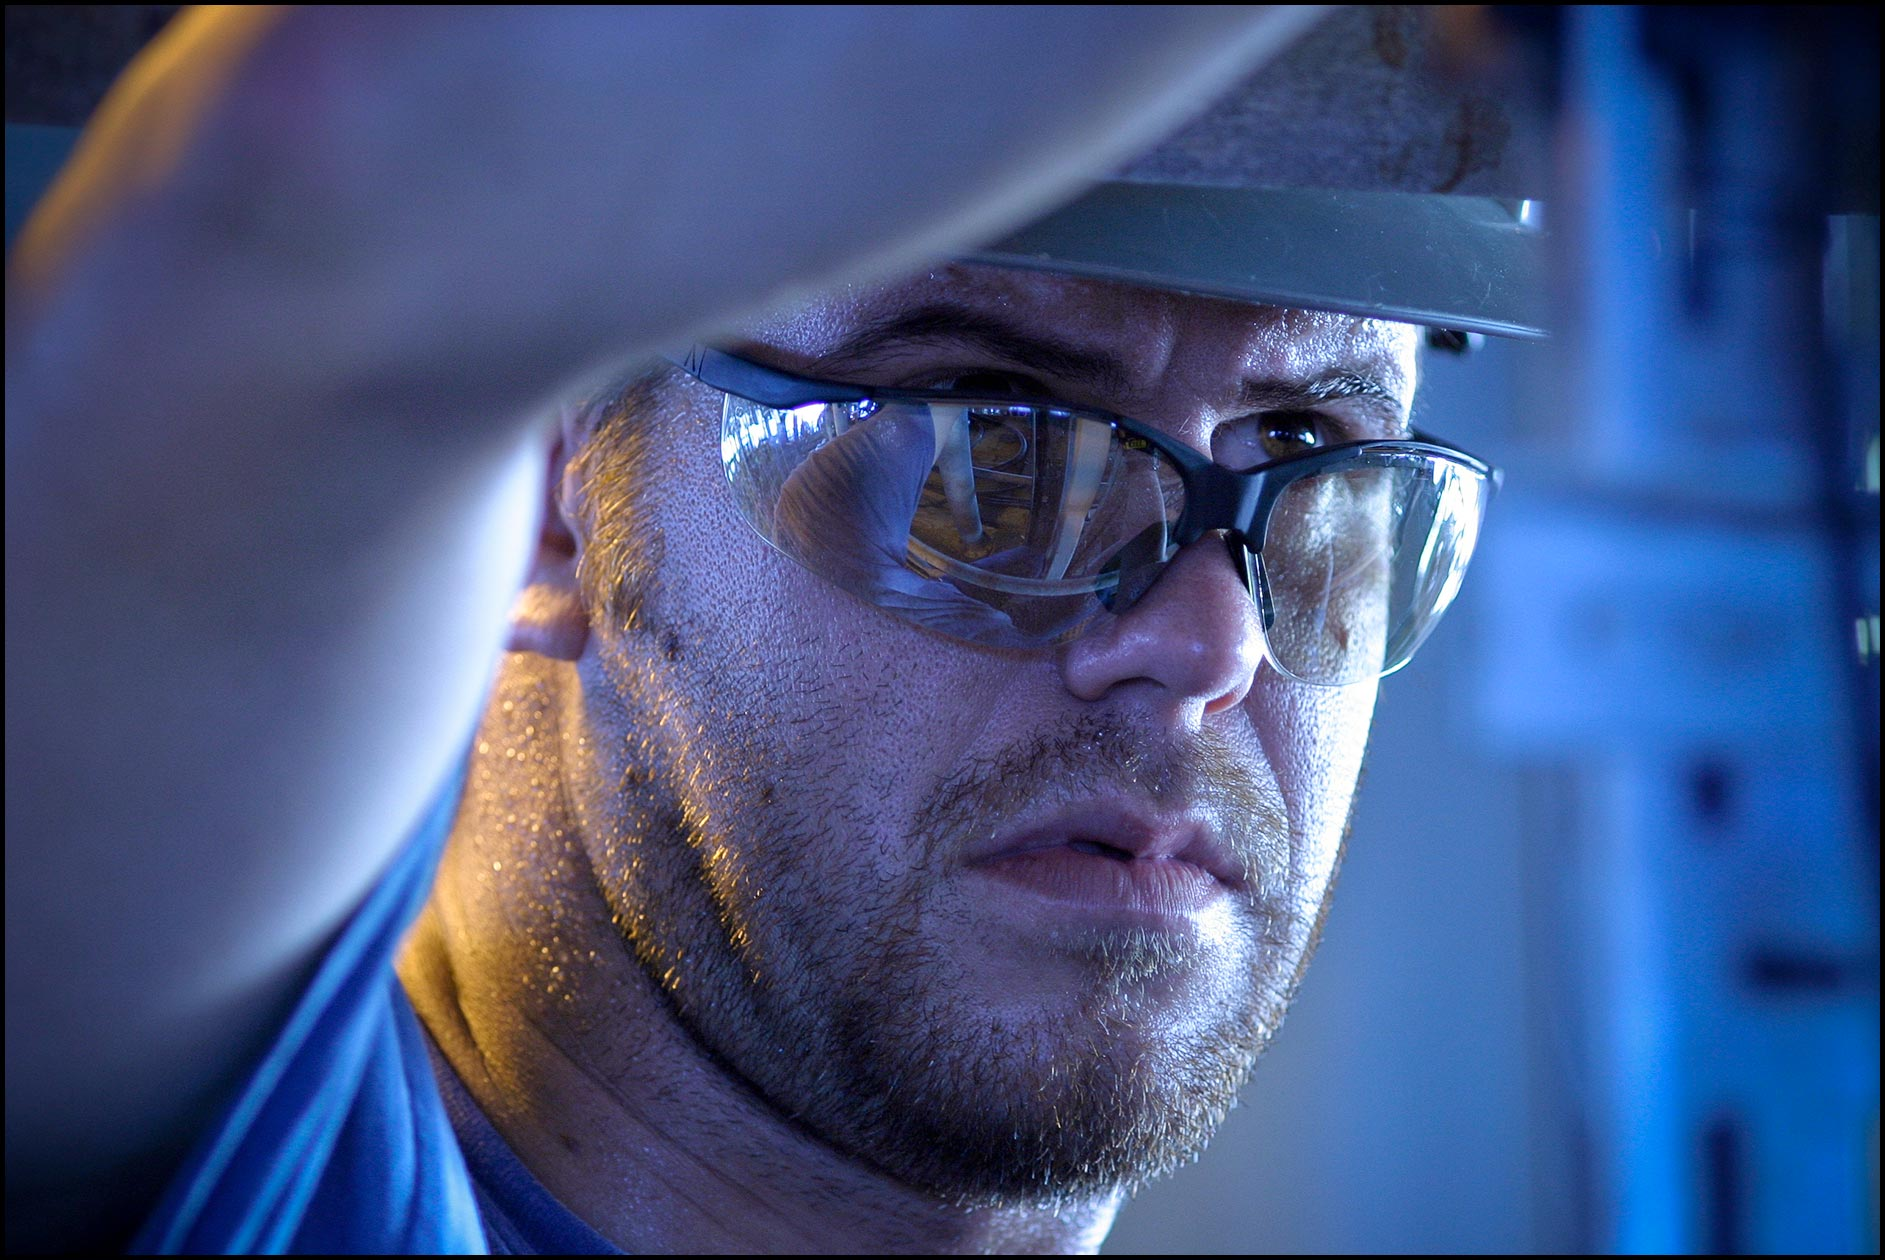 Detail of rig mechanic's face with safety glasses (PPE) looking upwards